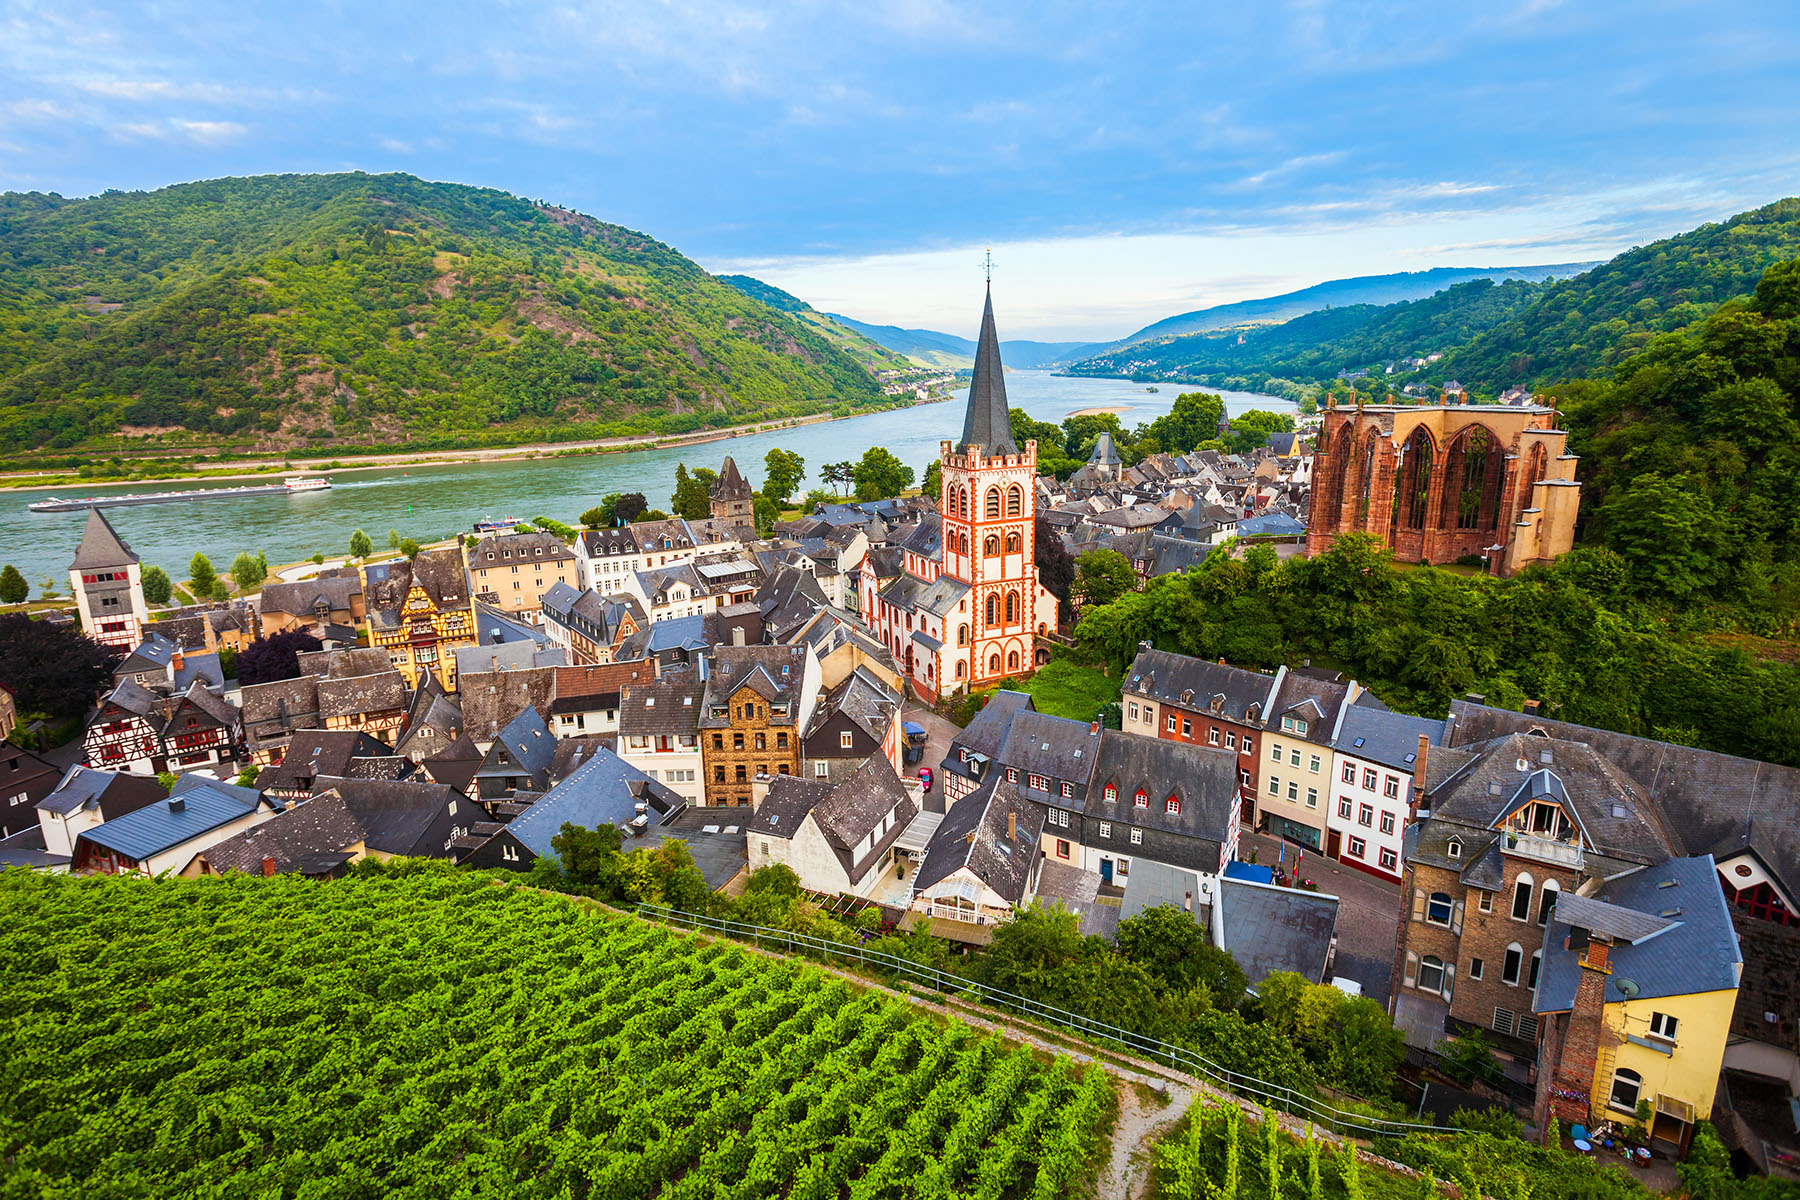 The village of Bacharach